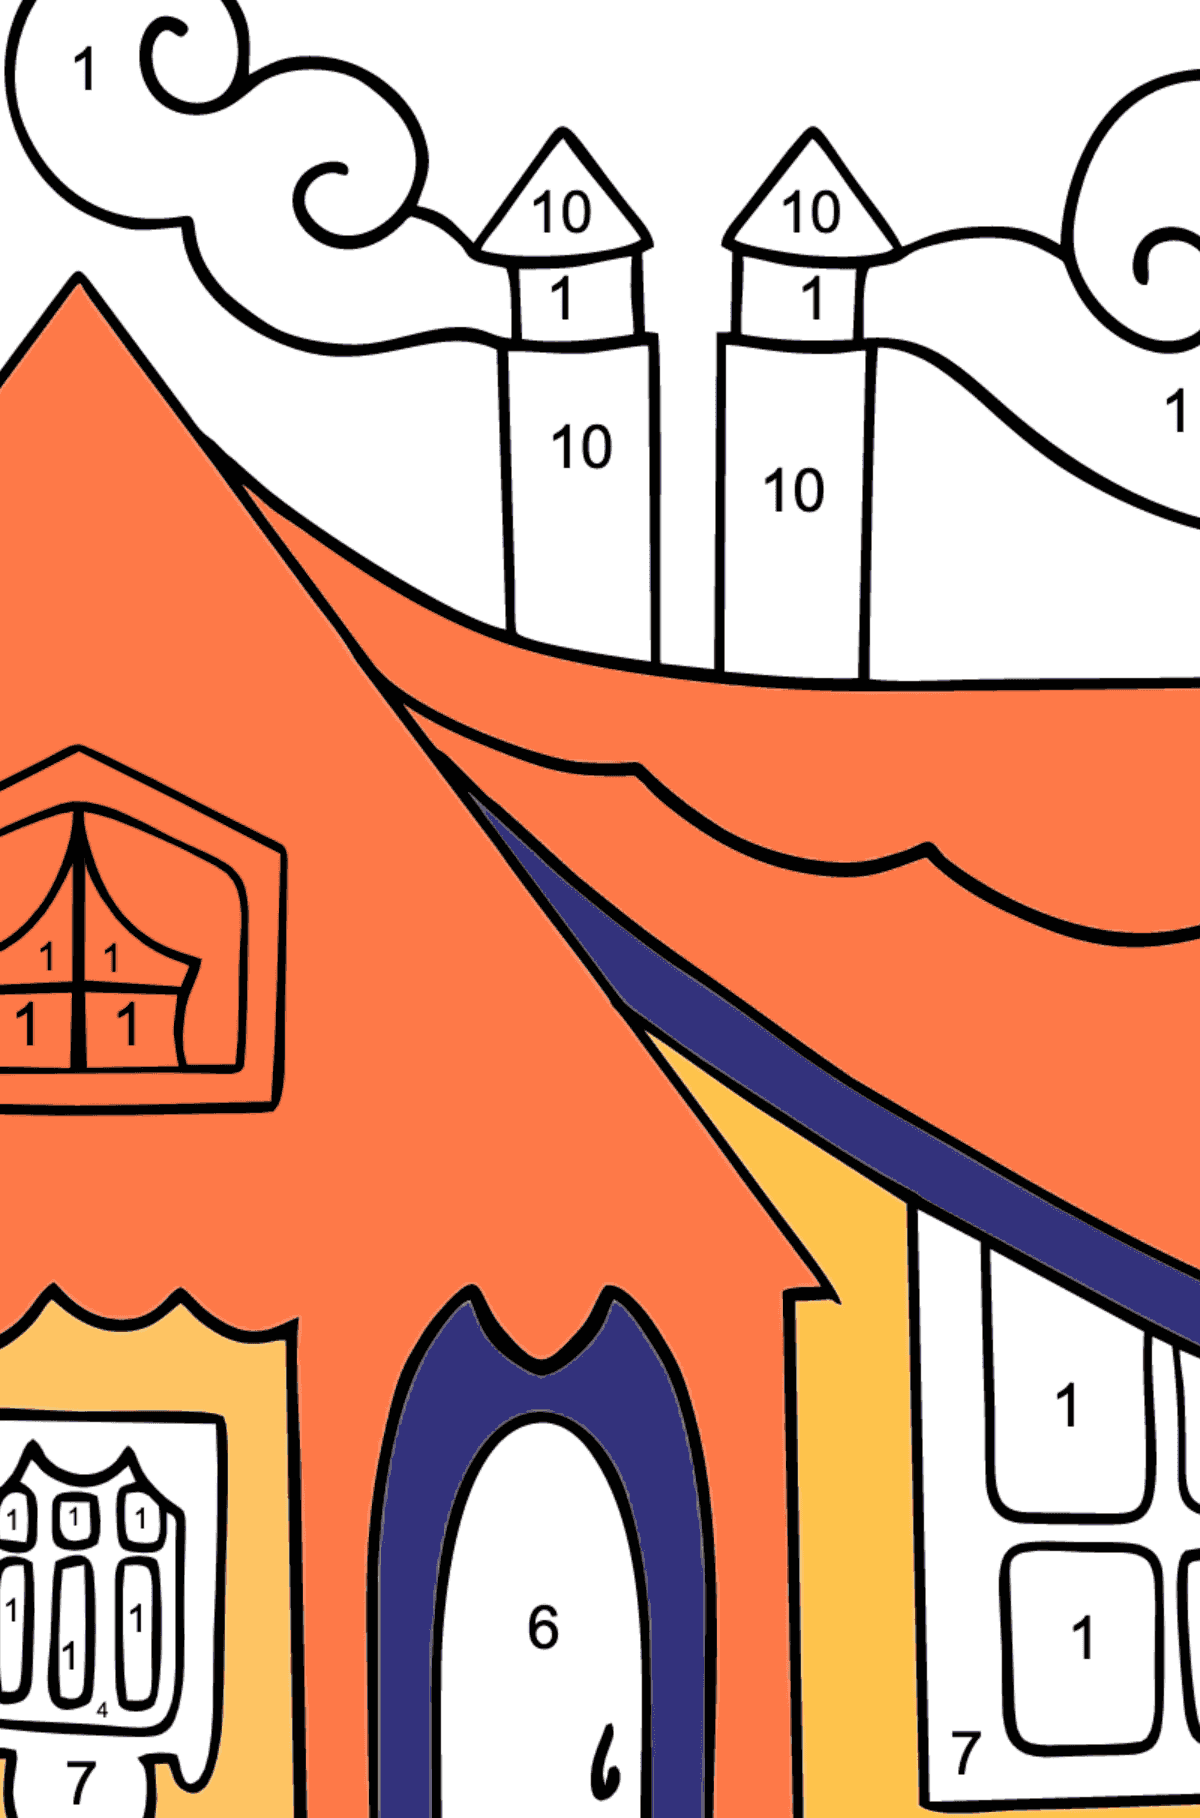 Simple Coloring Page - A Tiny House for Children  - Color by Number